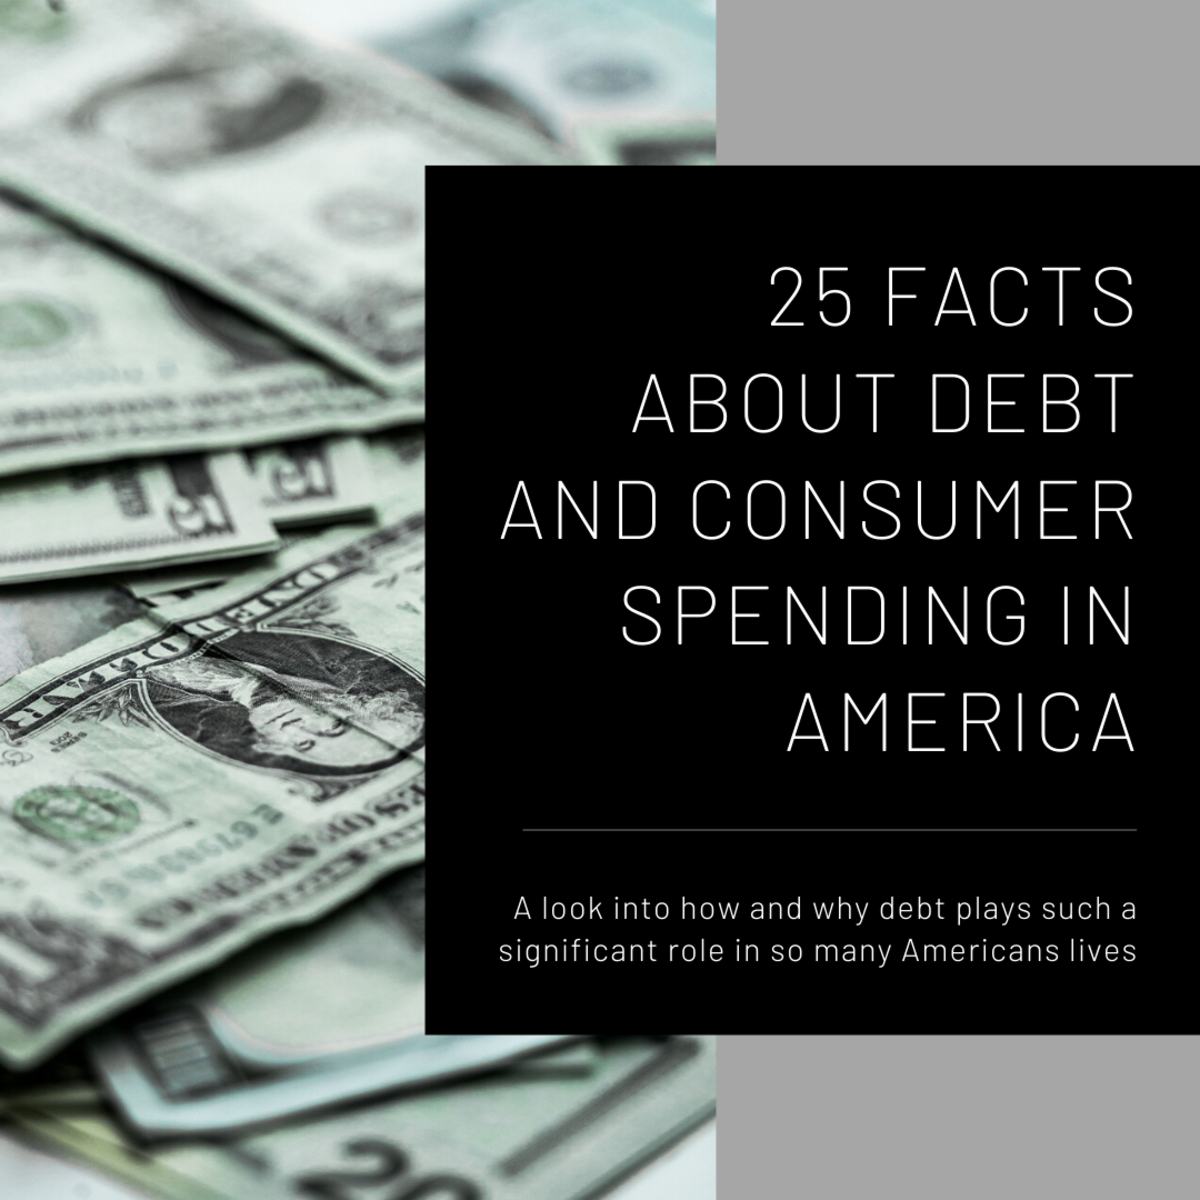 25 Facts About Consumer Spending and Debt in America